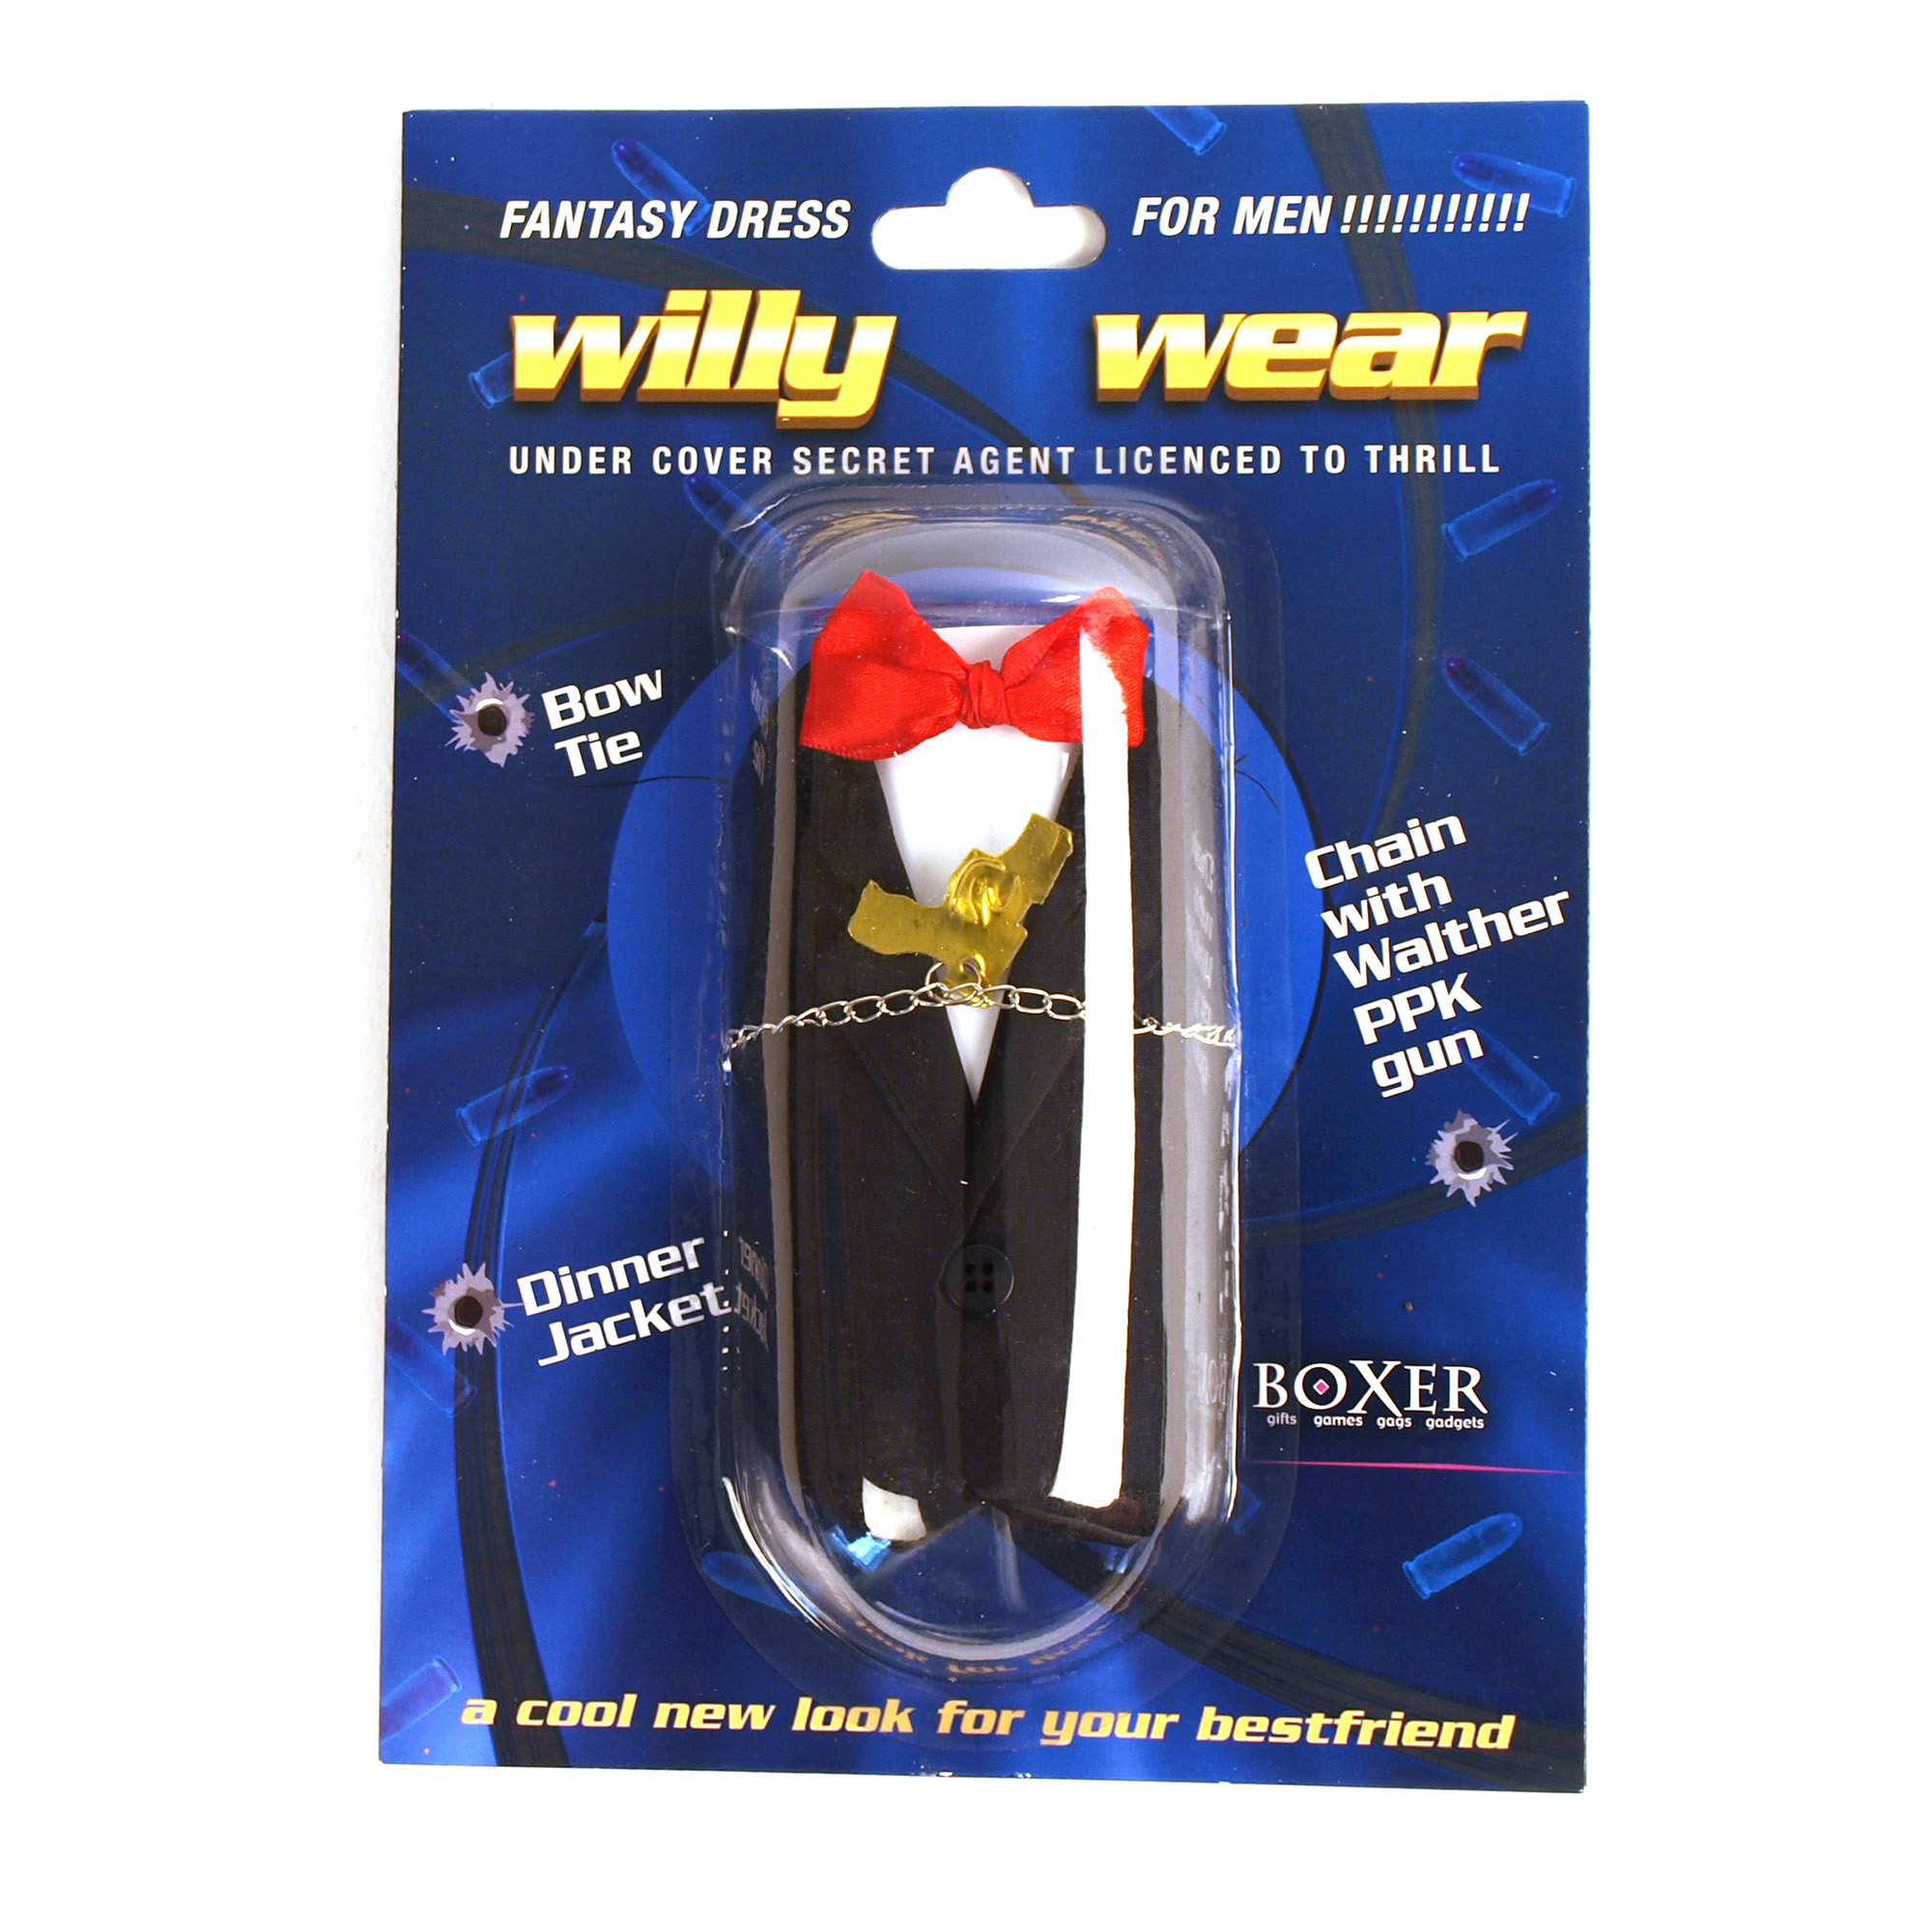 Willy wear - James Bond spy outfit for your chap!